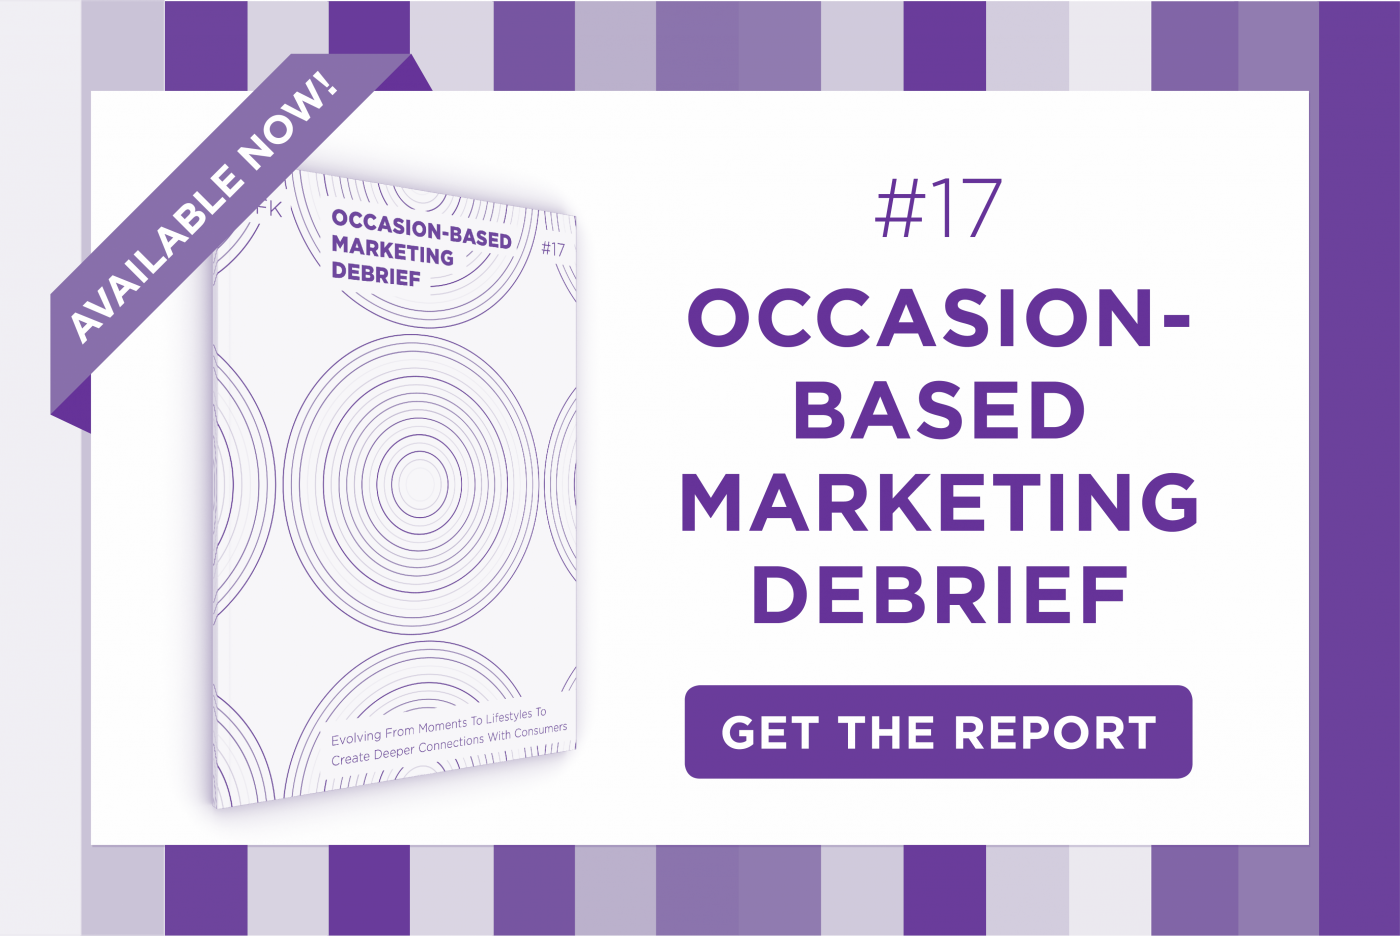 PSFK Launches The Occasion-Based Marketing Debrief